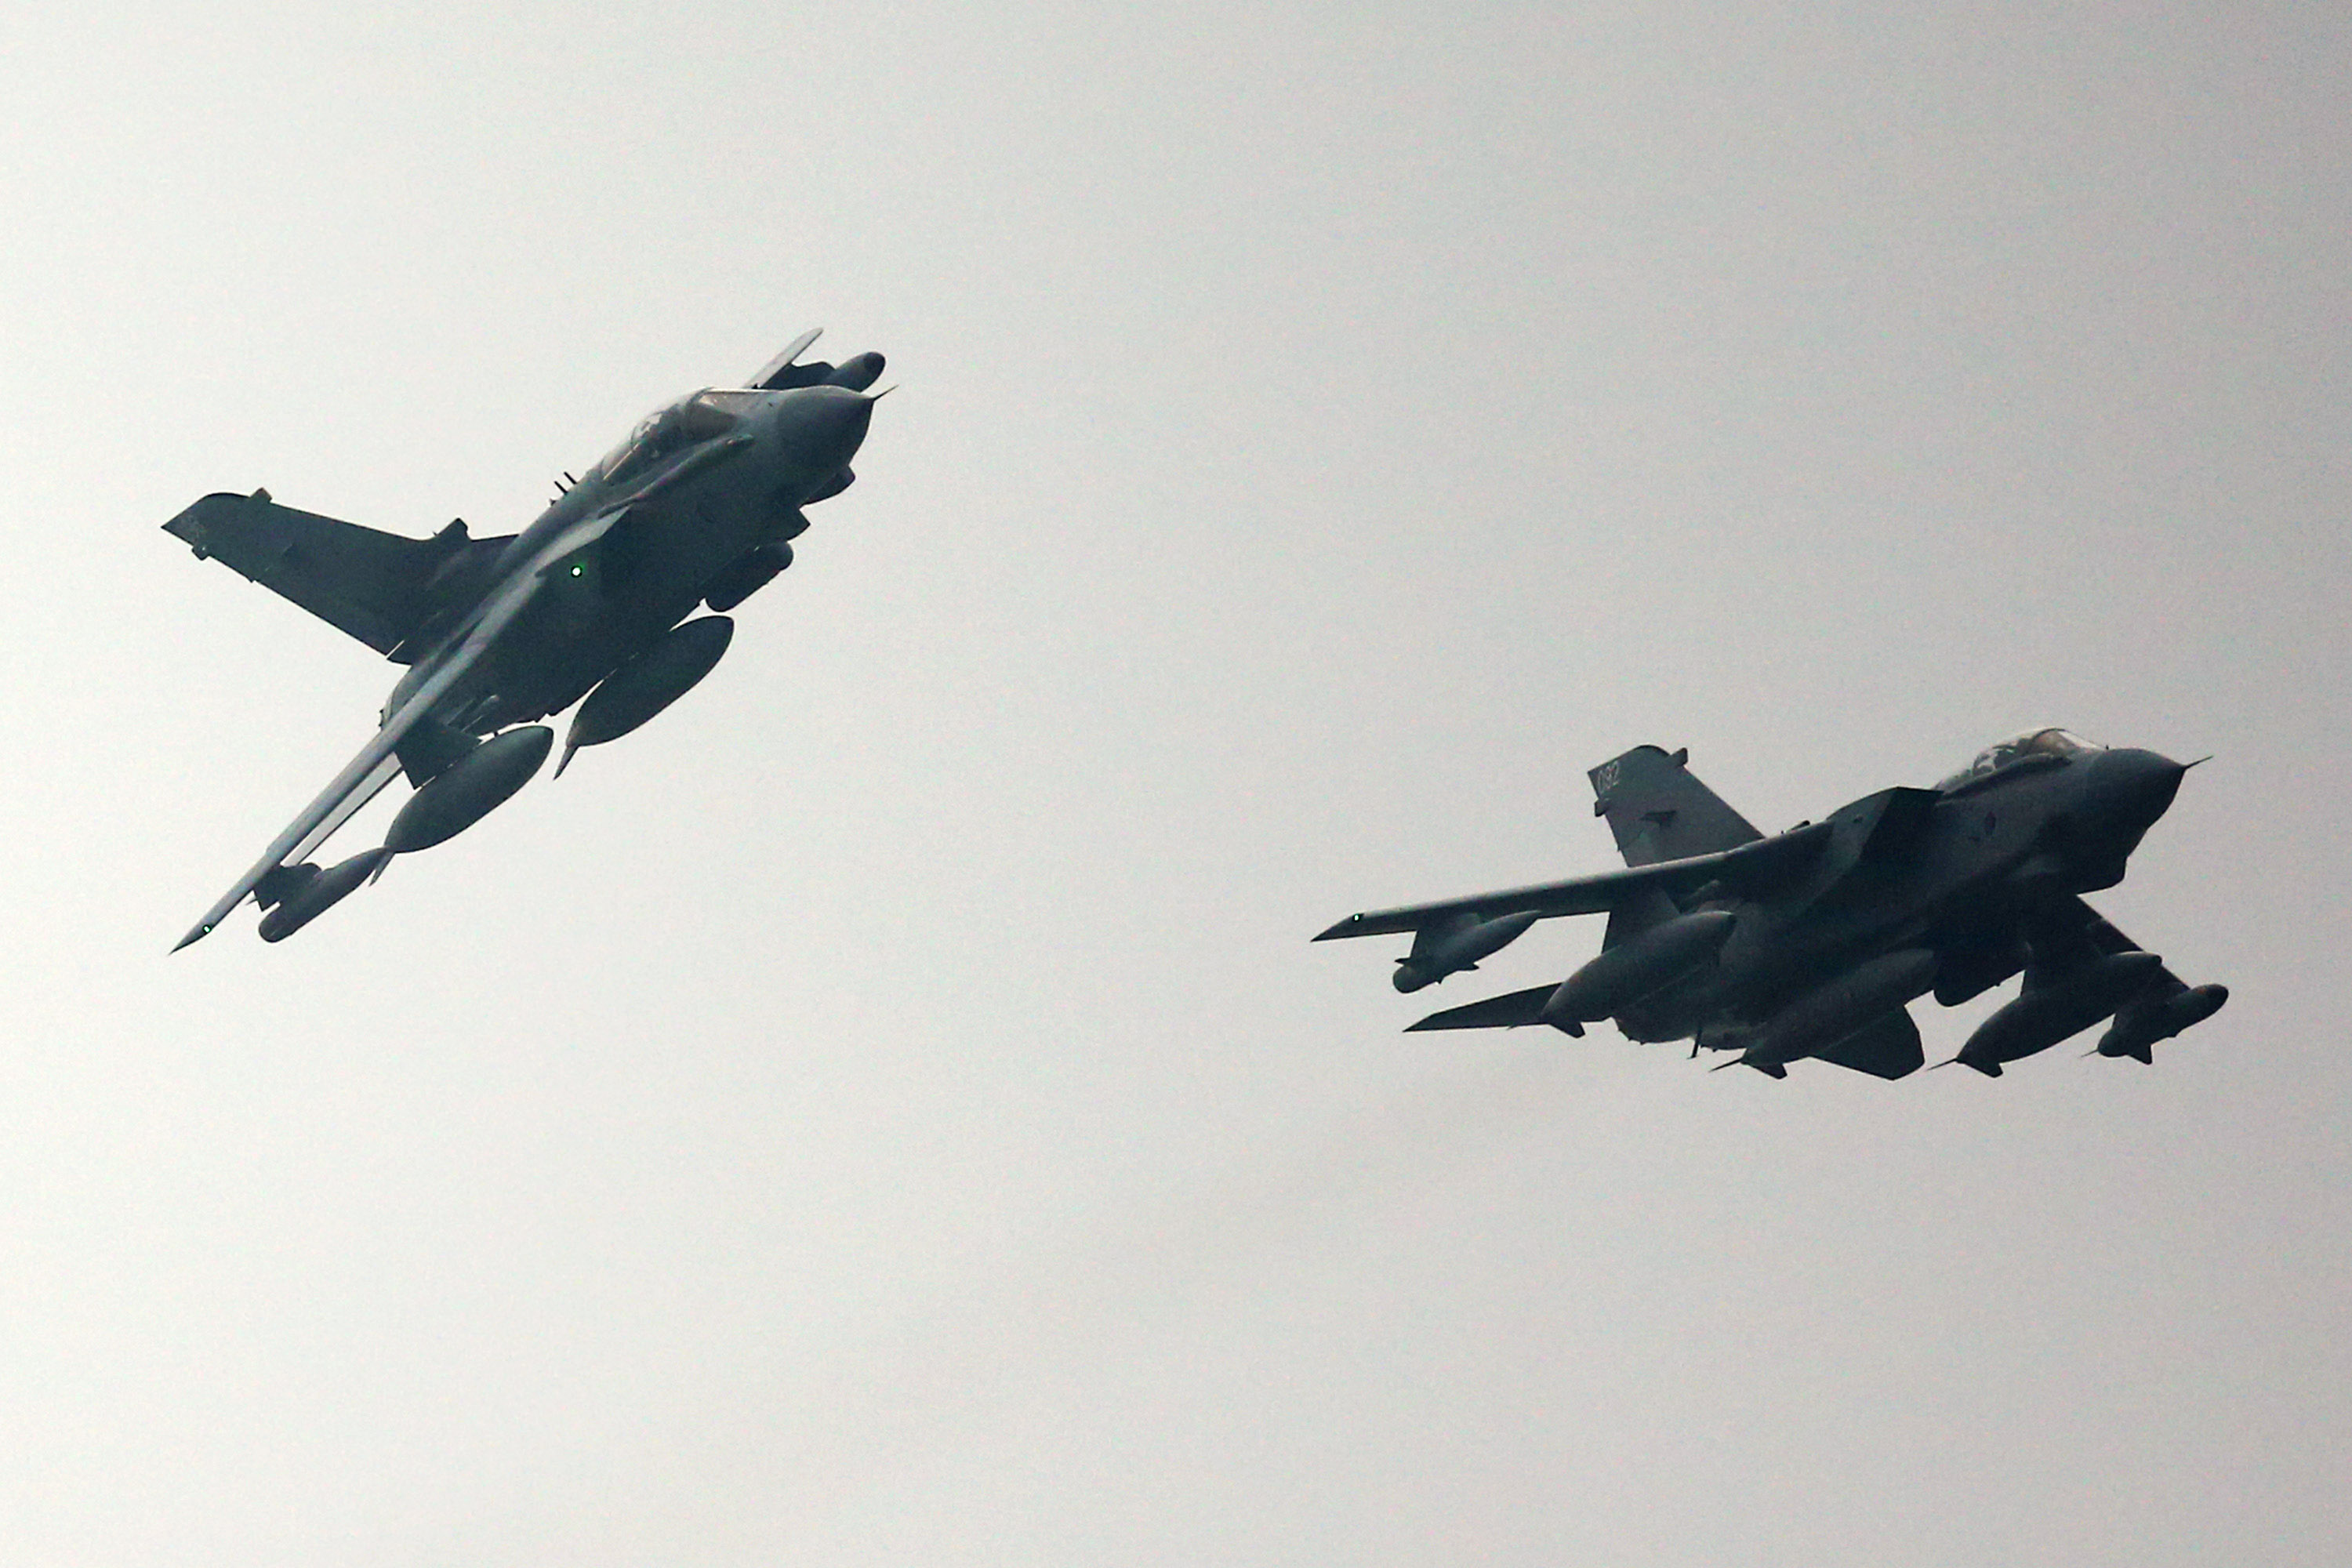 RAF Tornados Arrive Home From Afghanistan For The Last Time